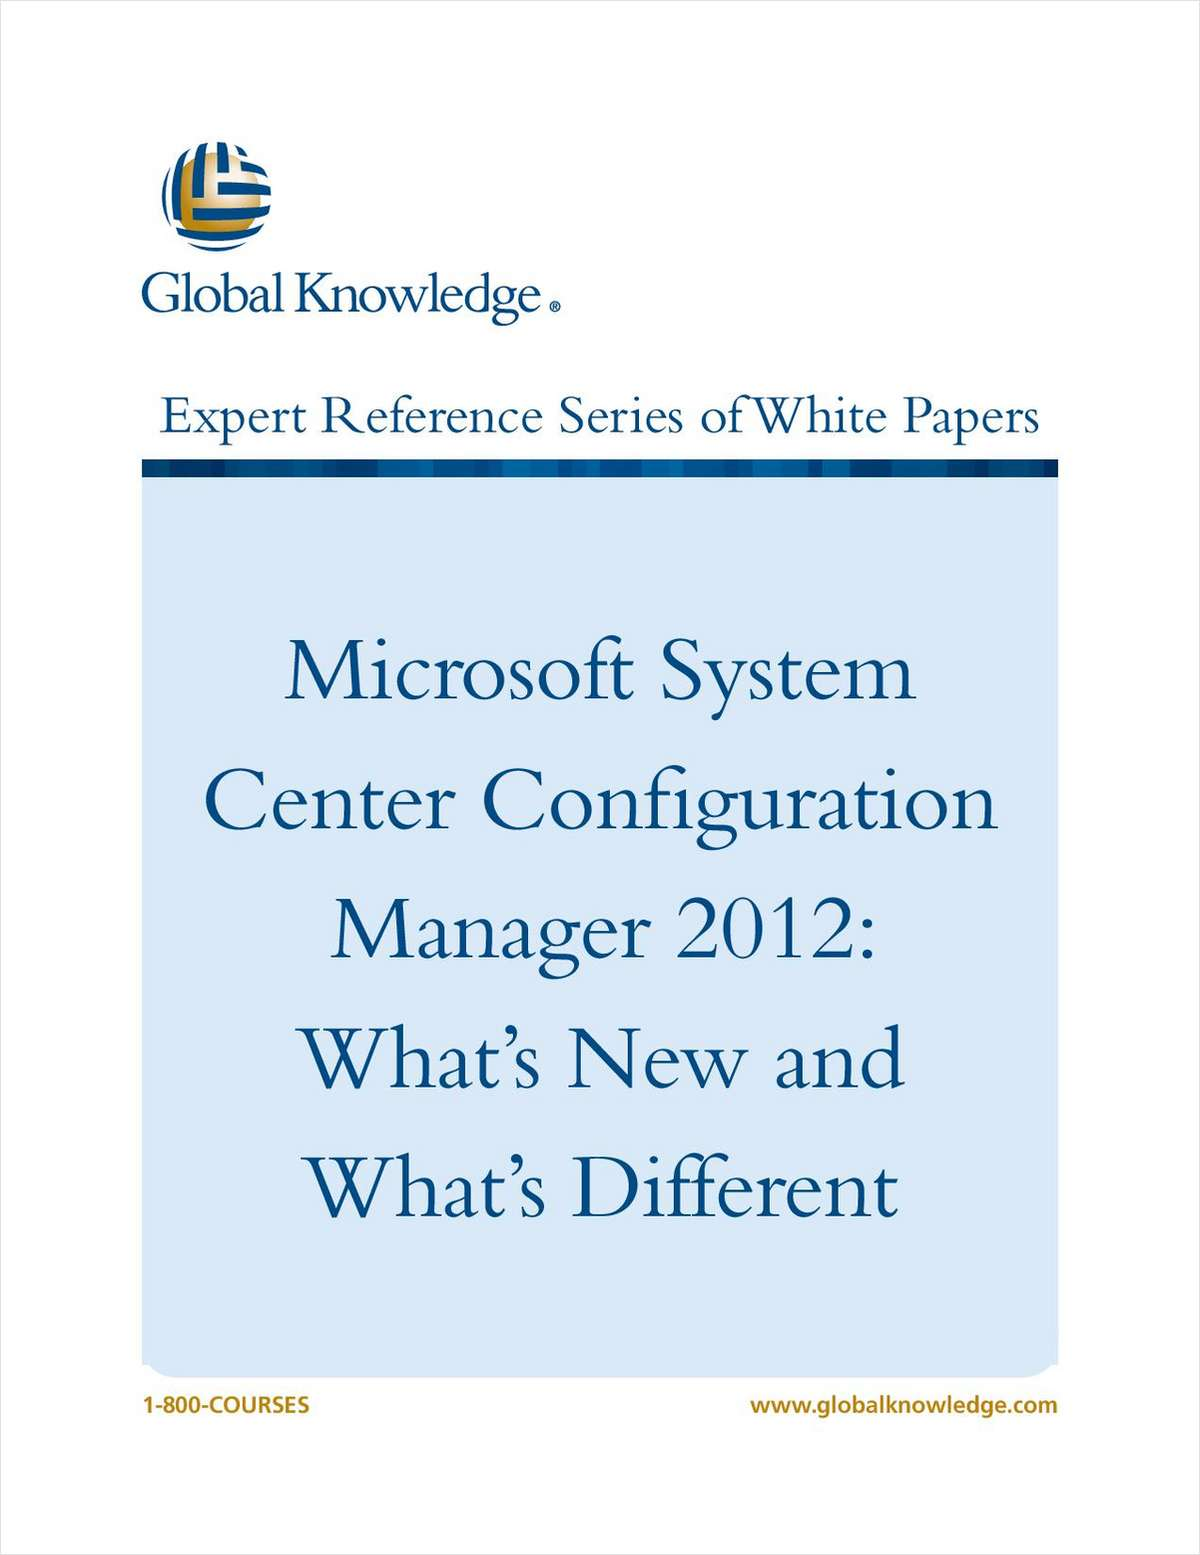 Microsoft System Center Configuration Manager 2012: What's New and What's Different